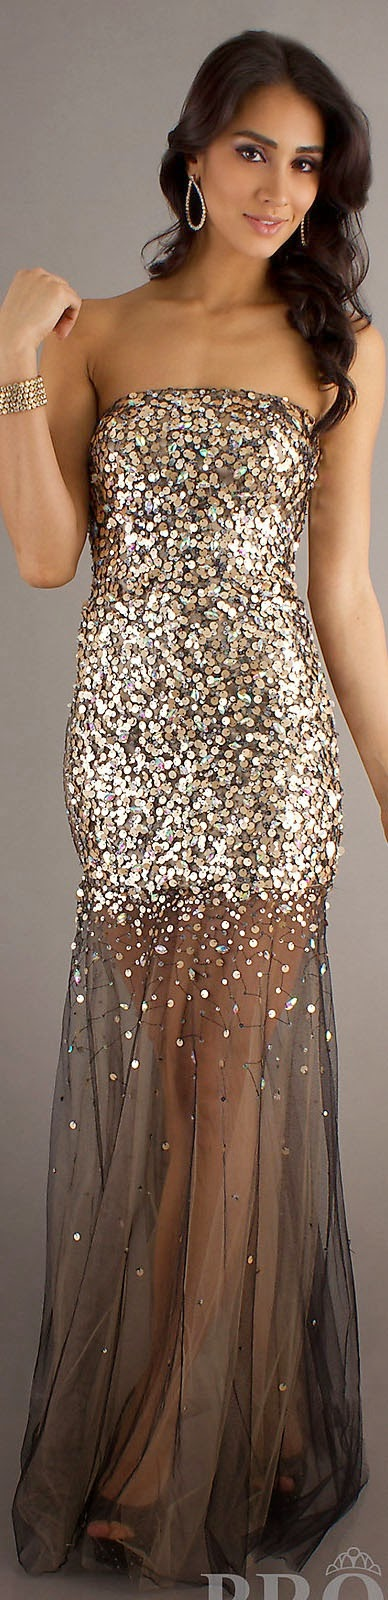 Top 5 Mind Blowing Party Dresses